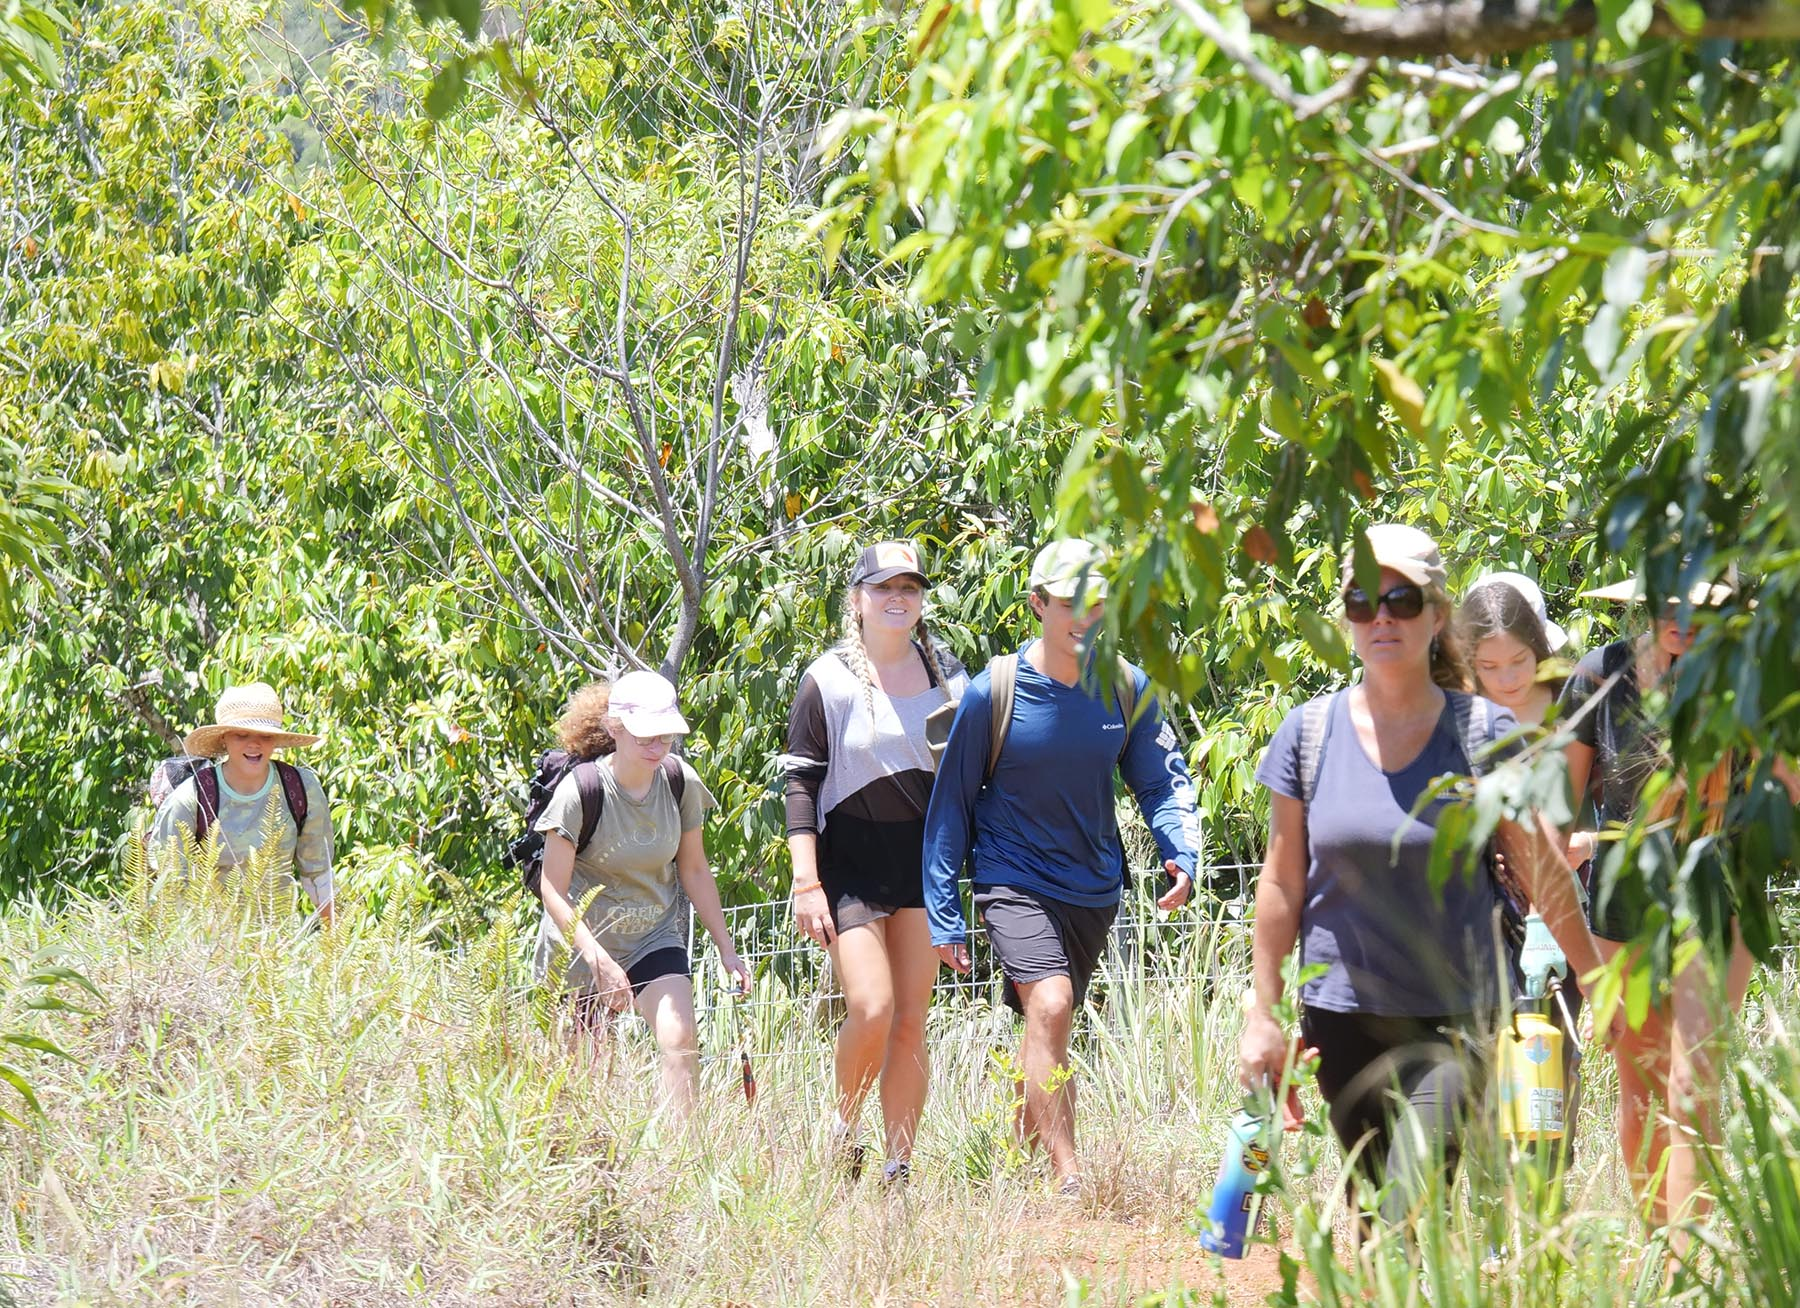 <p>The hike takes the volunteers to a location on Kalahe'e Ridge where they will remove invasive plants from areas previously planted with koa trees.</p>